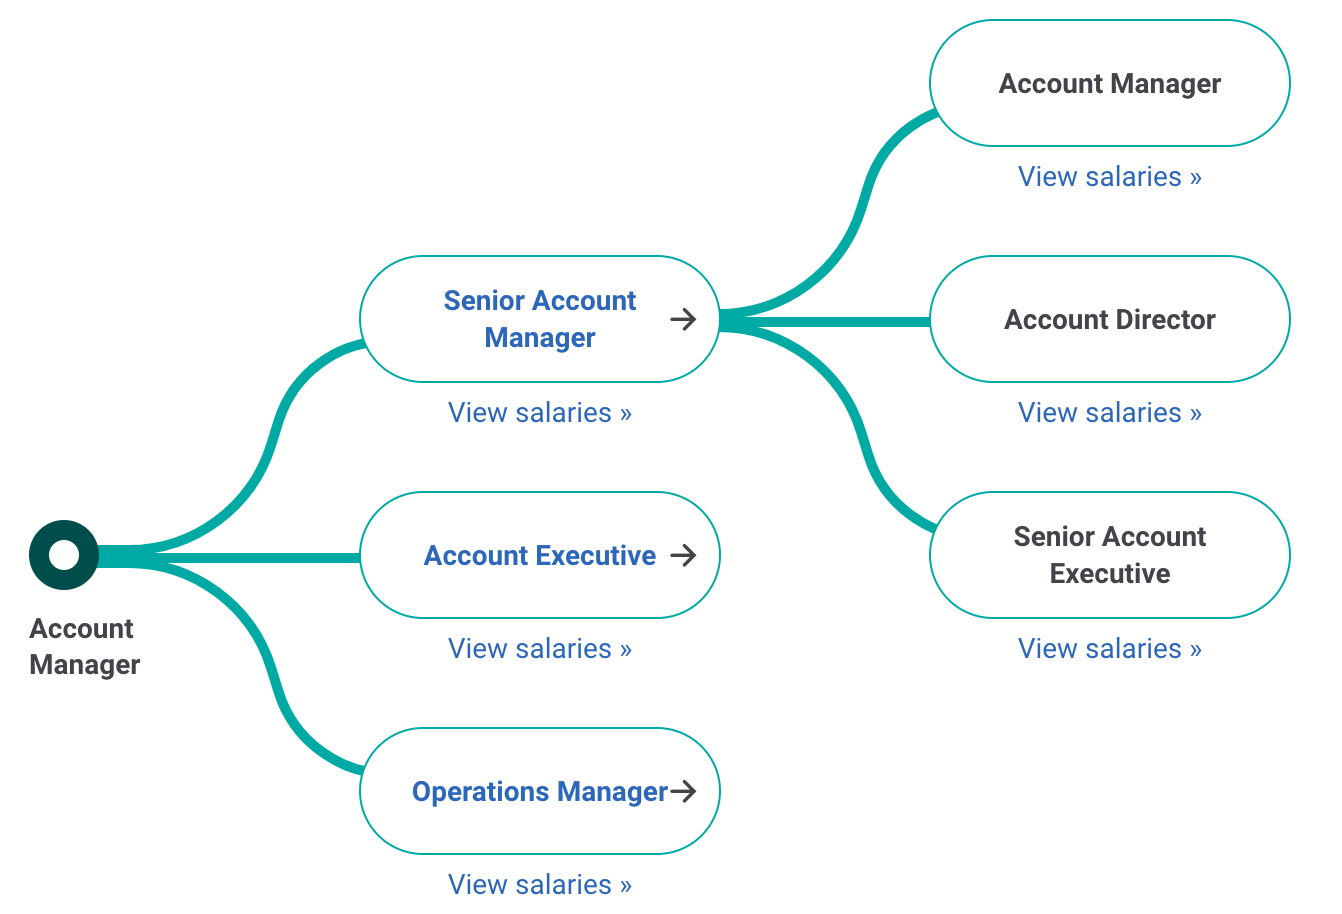 Account Manager career path